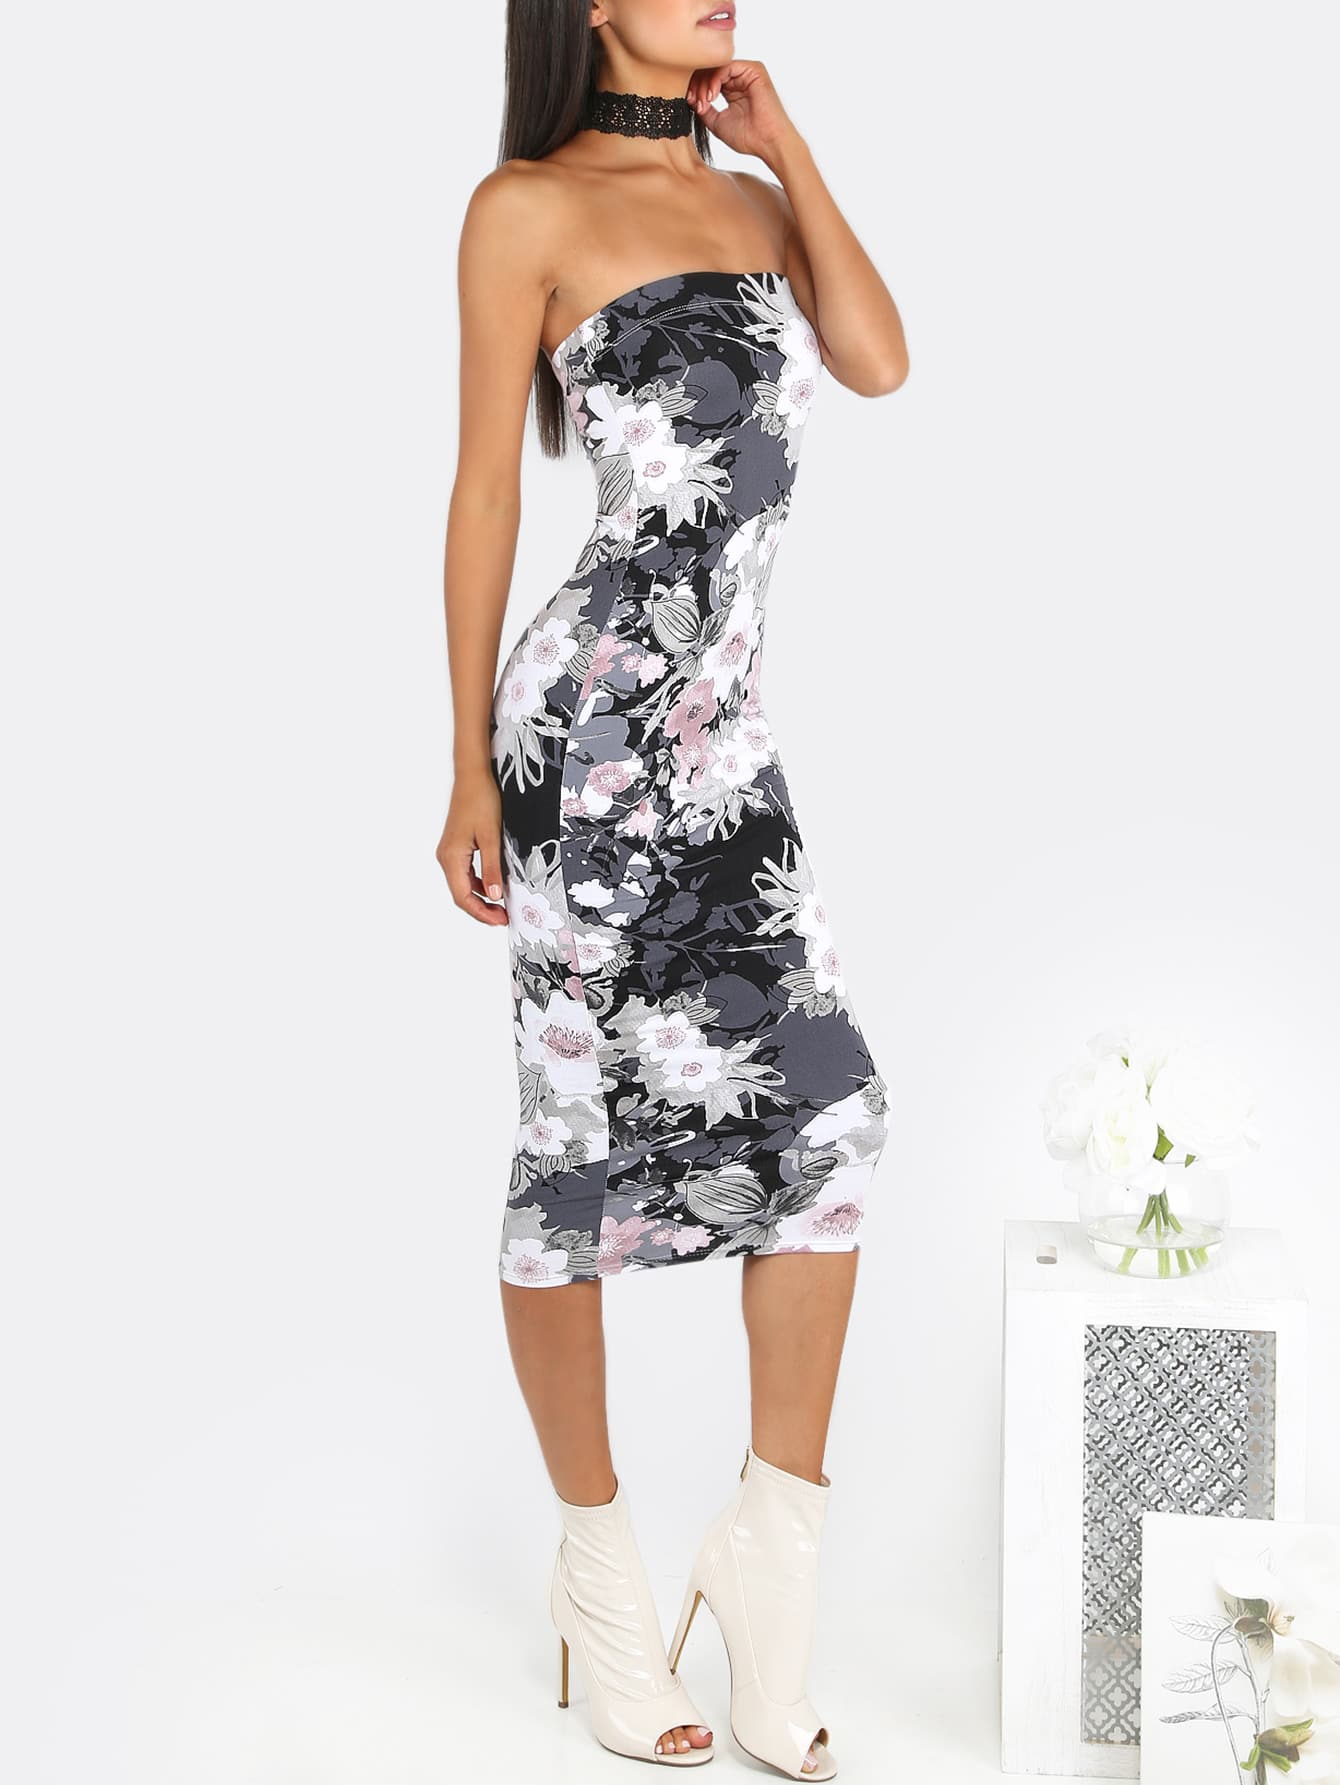 You'll also find little black dresses and formal dresses in styles like strapless, halter, off the shoulder and backless. Slip into a long sleeve black dress for those cooler evenings, or go short sleeve or sleeveless for a gorgeous summer look.